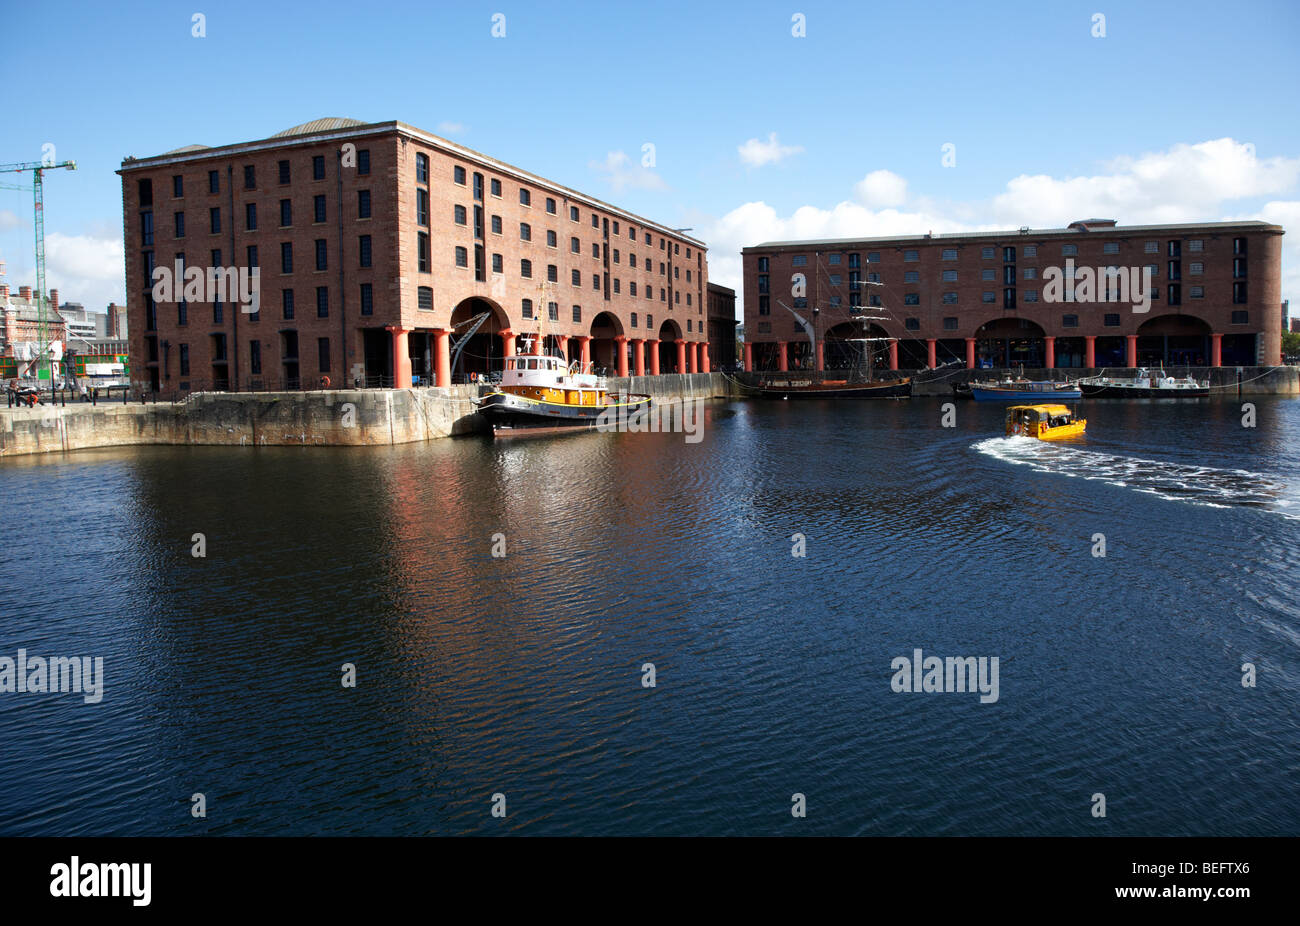 warehouses housing the maritime museum in the basin at the albert dock liverpool merseyside england uk - Stock Image